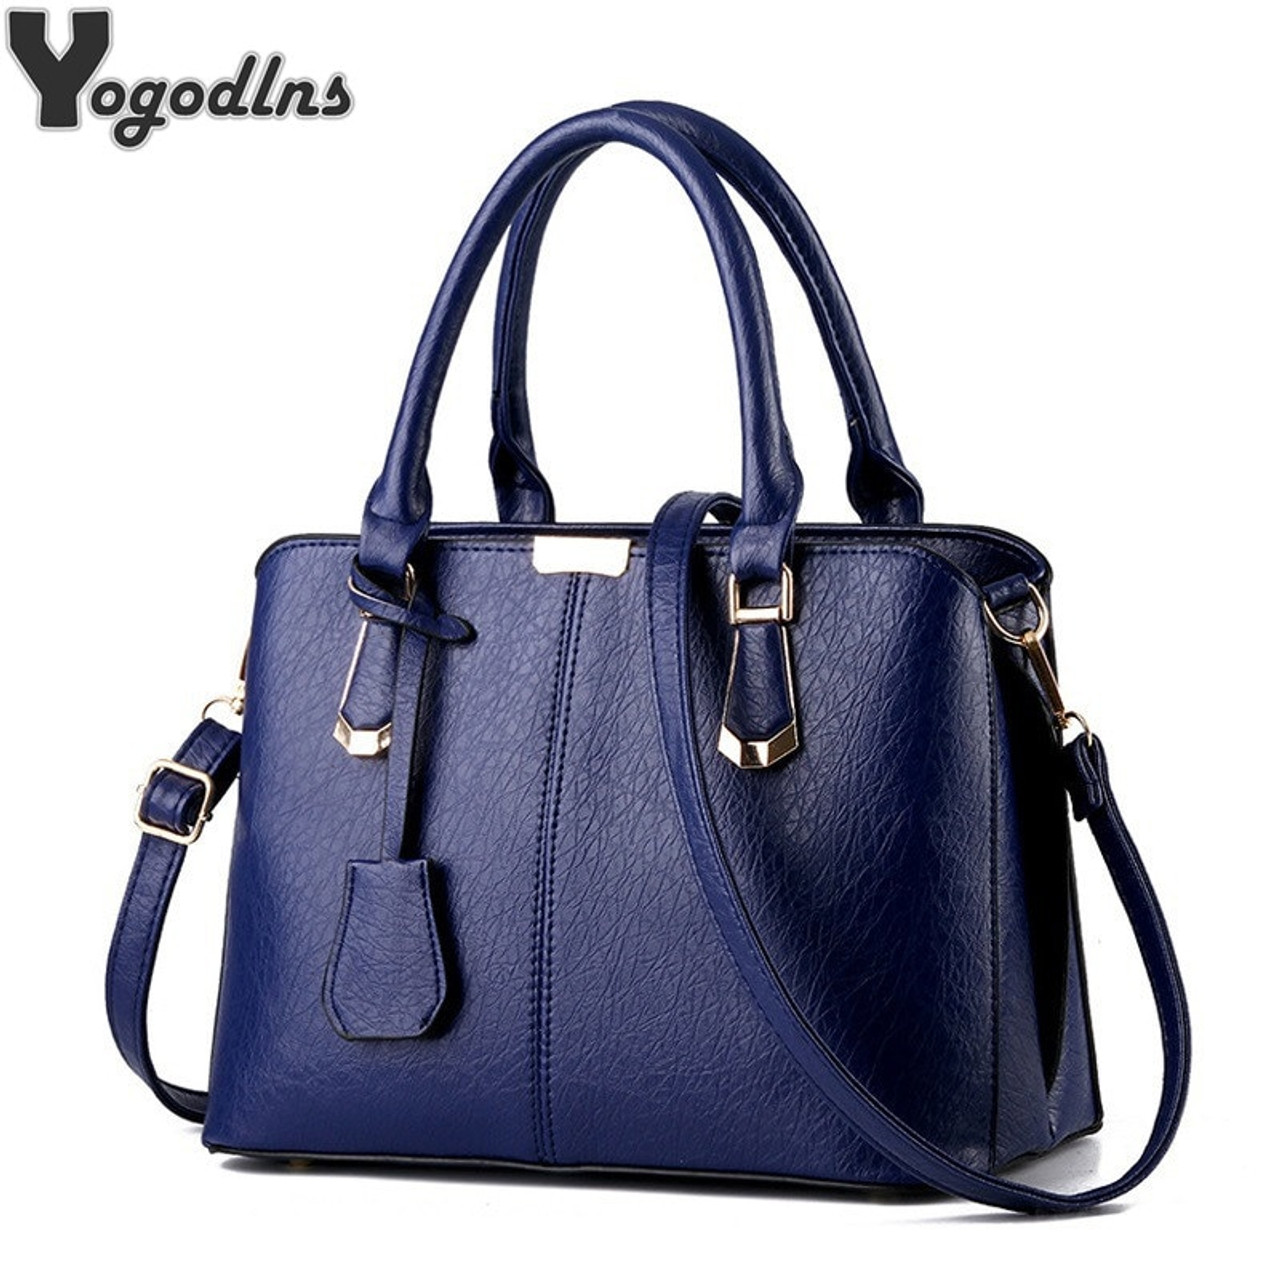 ffd684e658a6 Women luxury handbags new stylish female shoulder bags sac a main bolsos  2018 new ladies pu ...